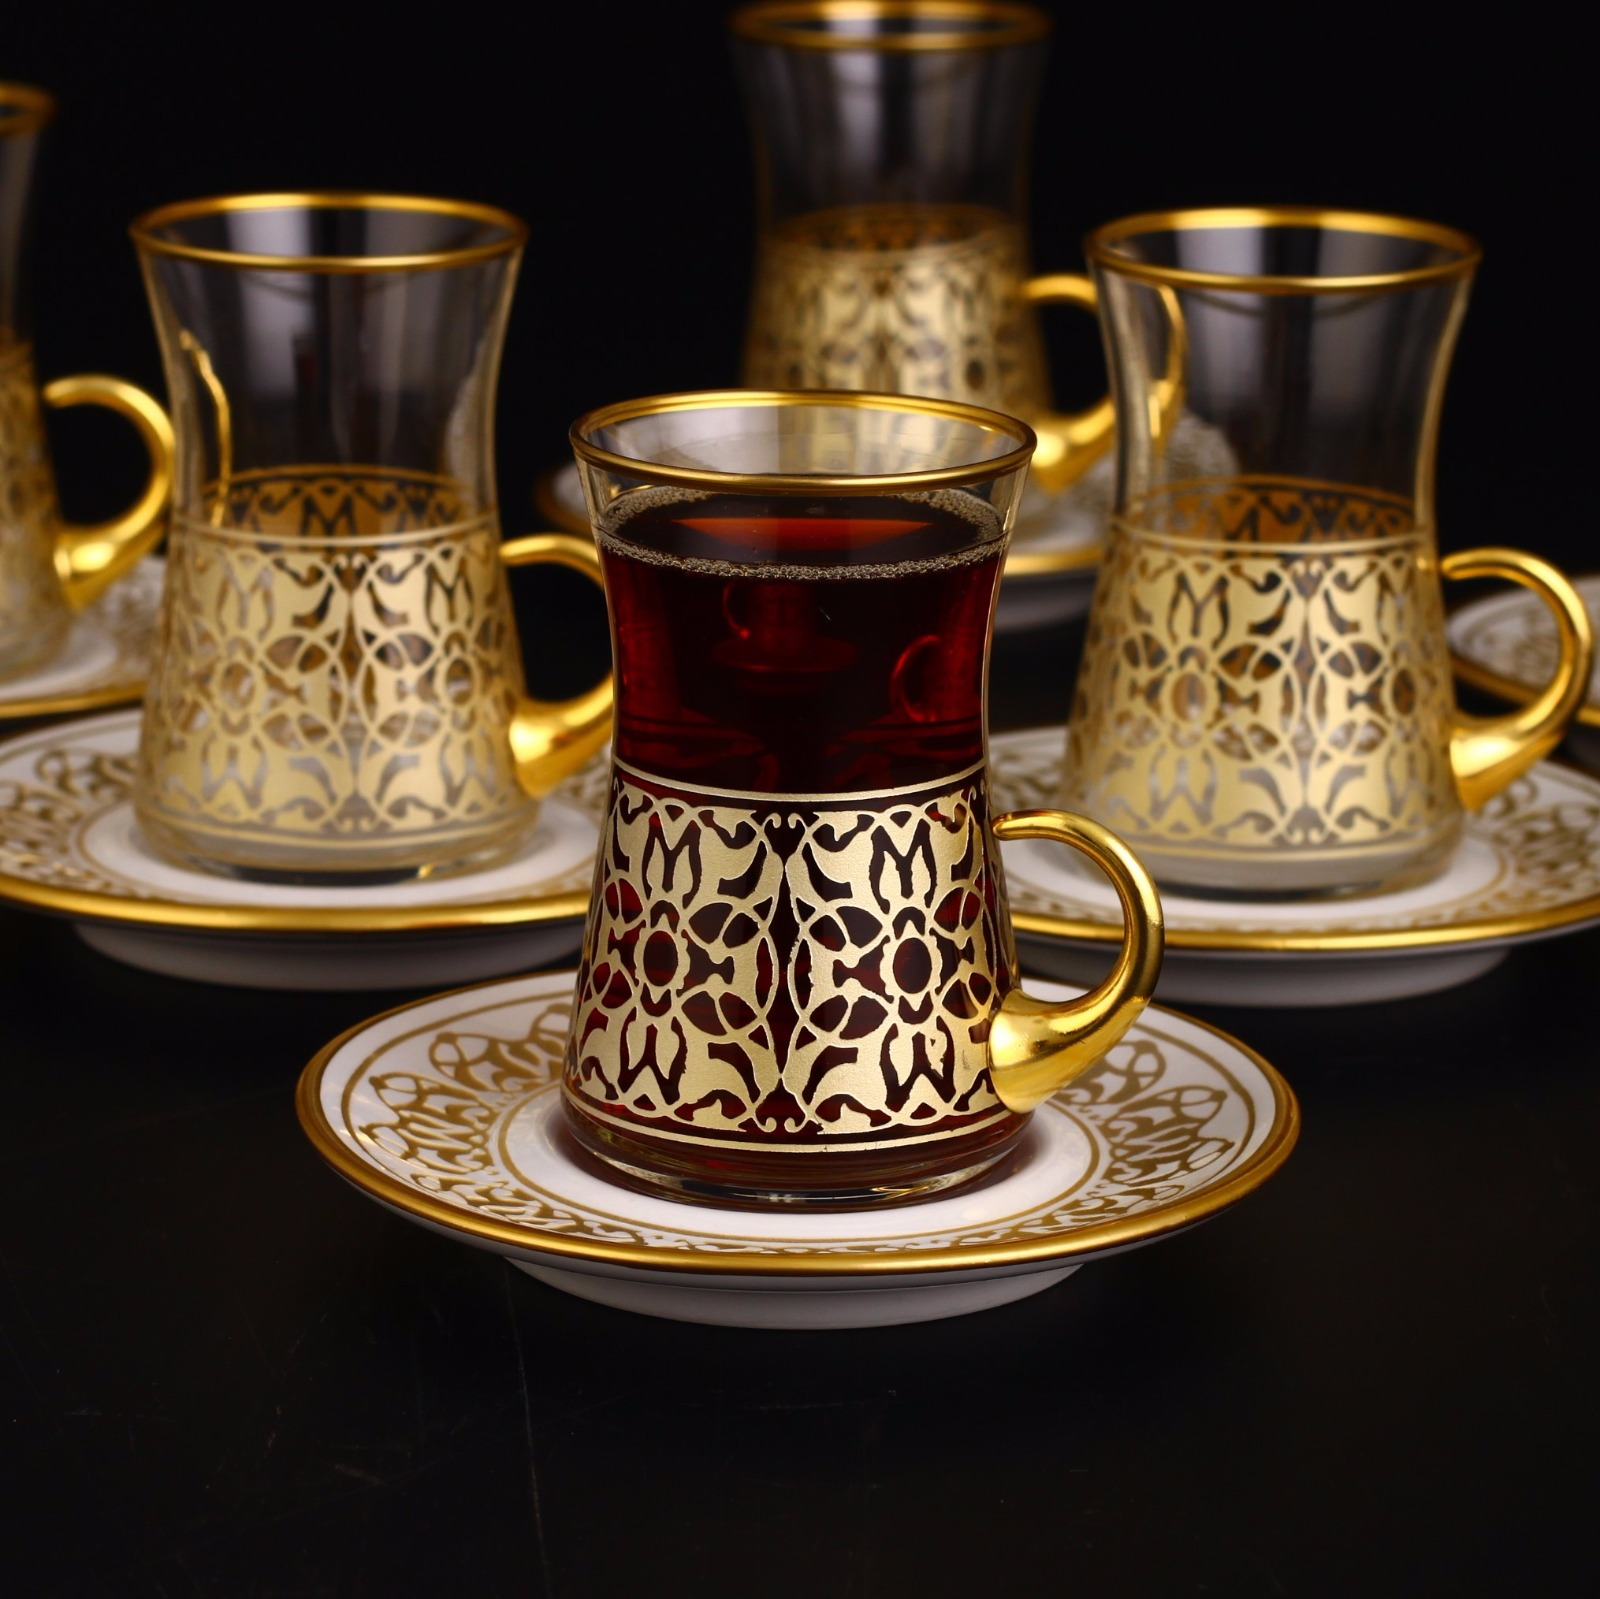 12 Pcs Turkish Tea Set With Holder Gold Color Fairturk Com